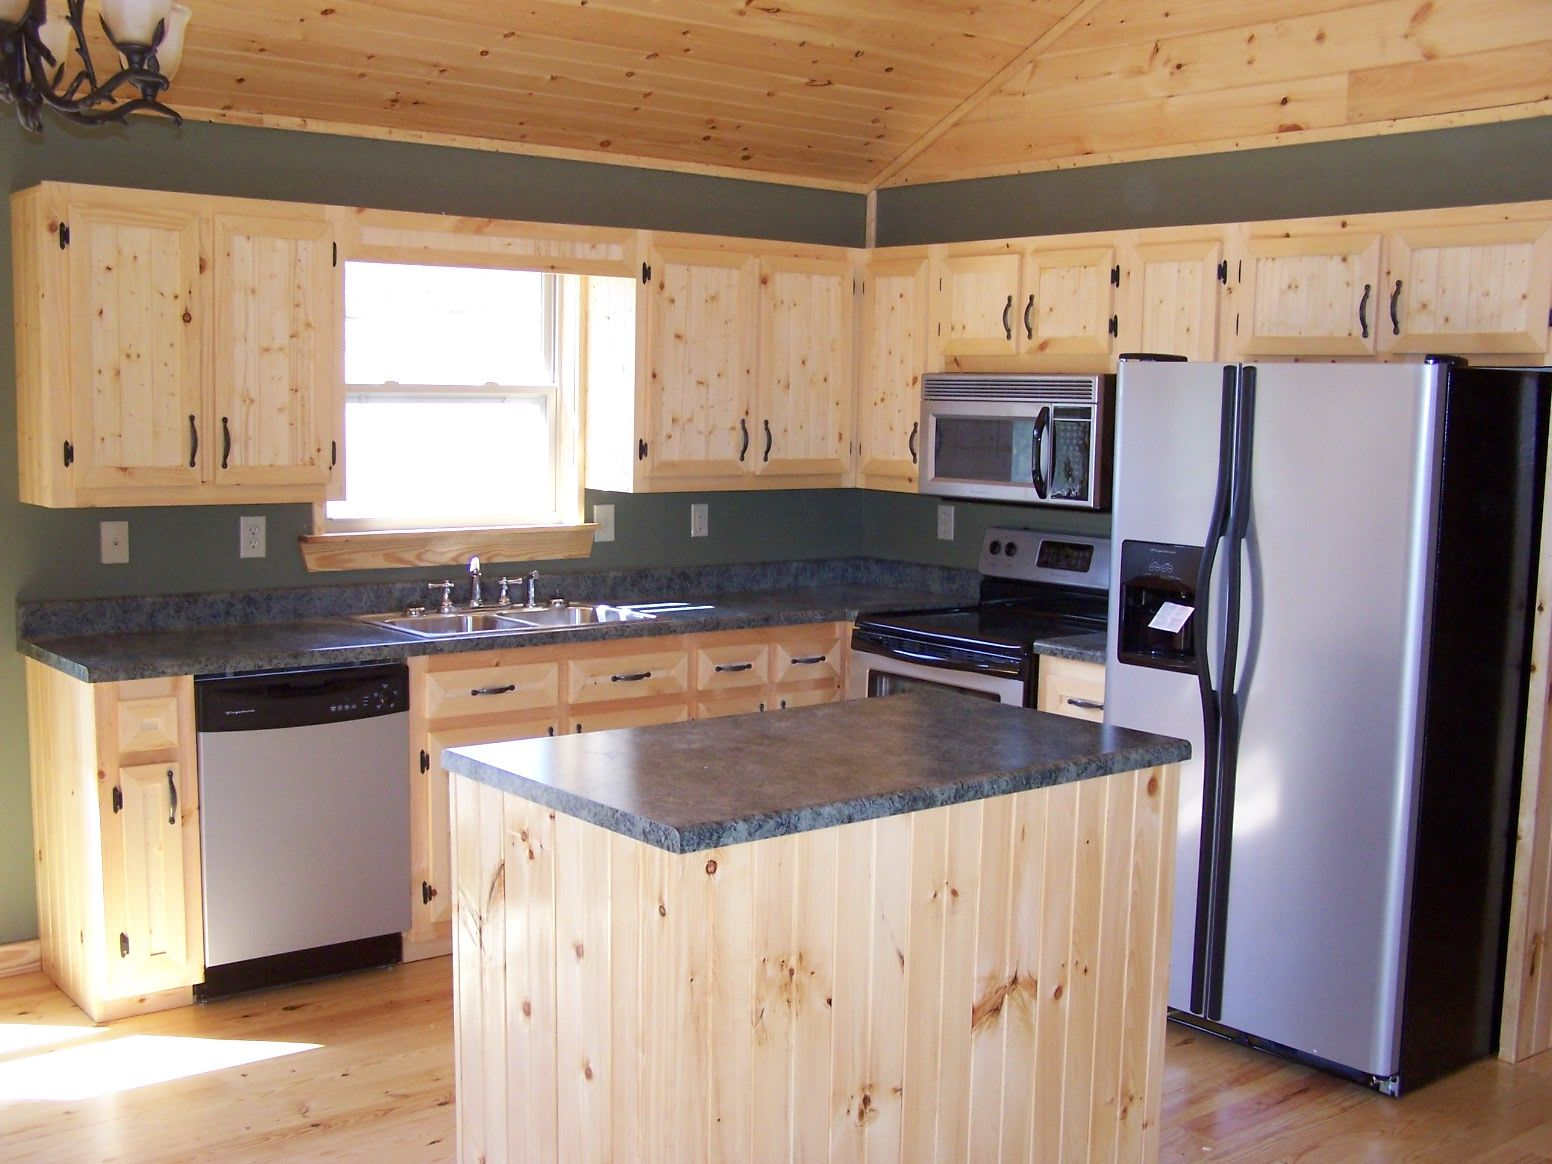 Pine Kitchen Cabinets Good Things And Bad Things To Consider Pine Kitchen Cabinets Rustic Kitchen Cabinets Pine Kitchen